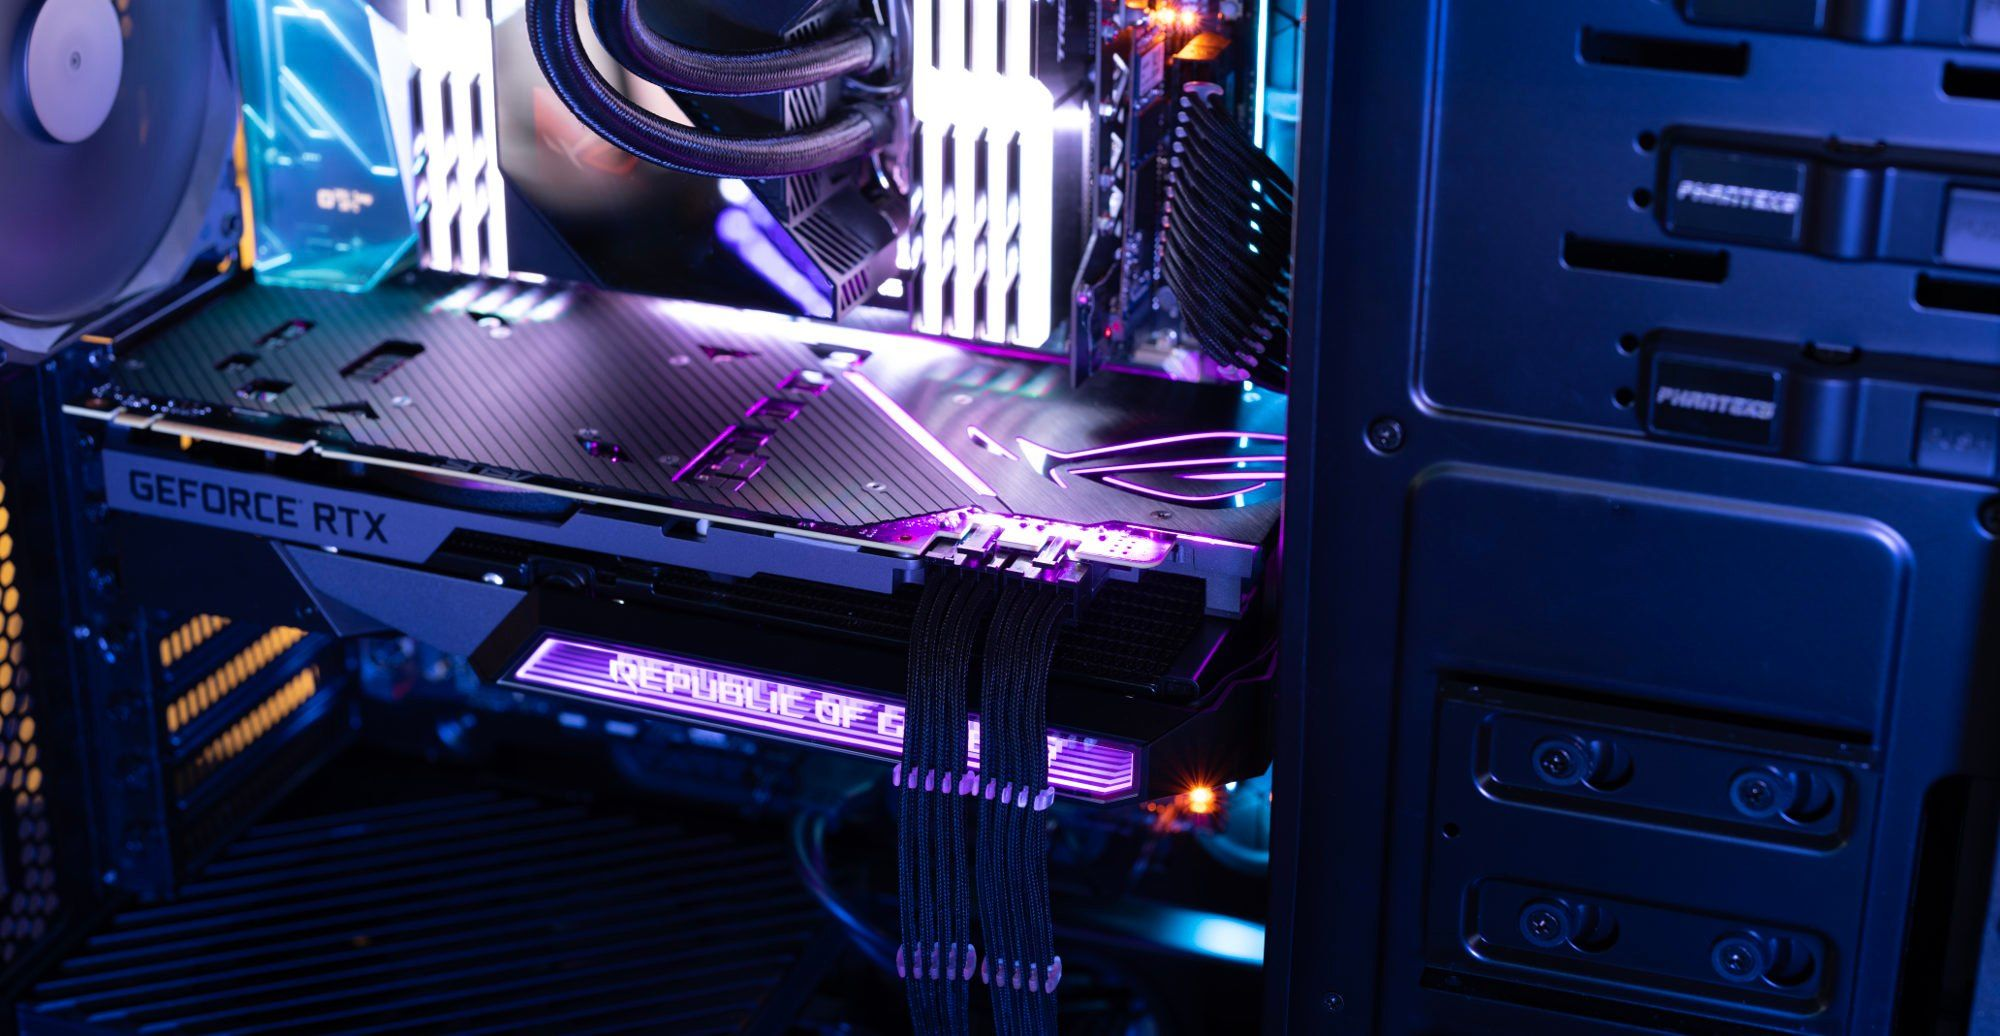 The Rog Matrix Rtx 2080 Ti Fully Integrates Liquid Gpu Cooling